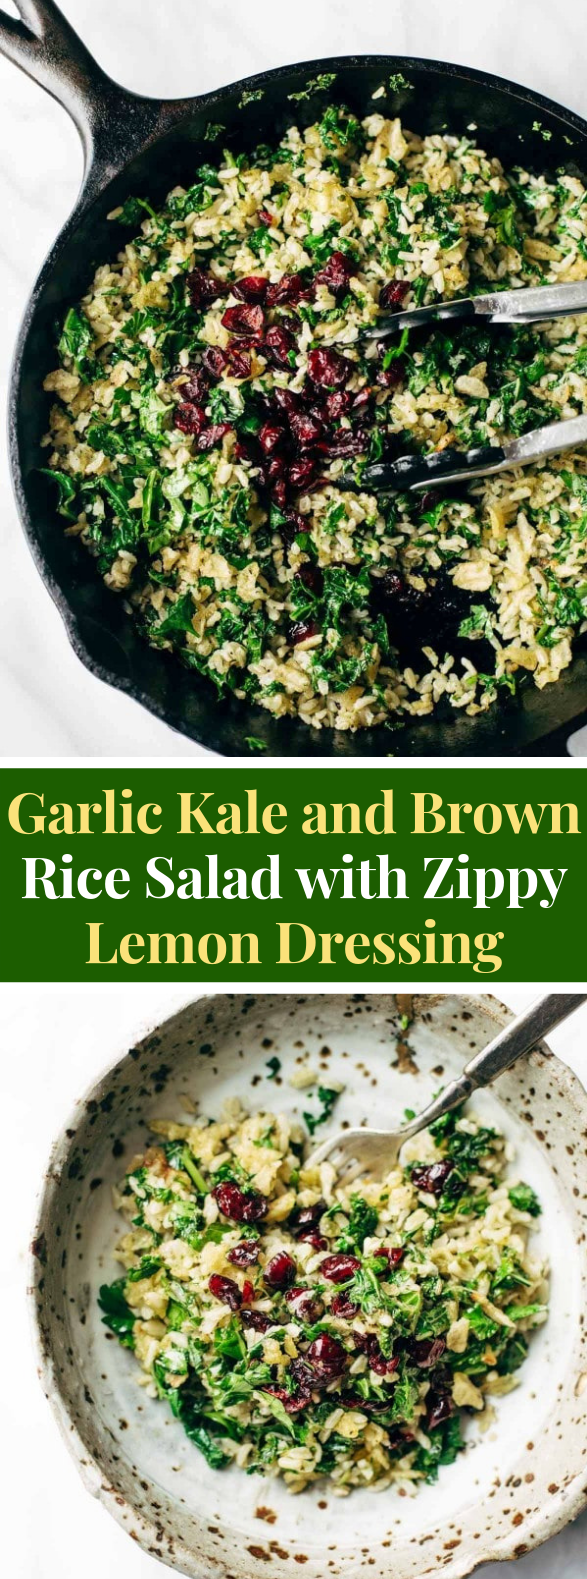 Garlic Kale and Brown Rice Salad with Zippy Lemon Dressing #vegetarian #healthysalads